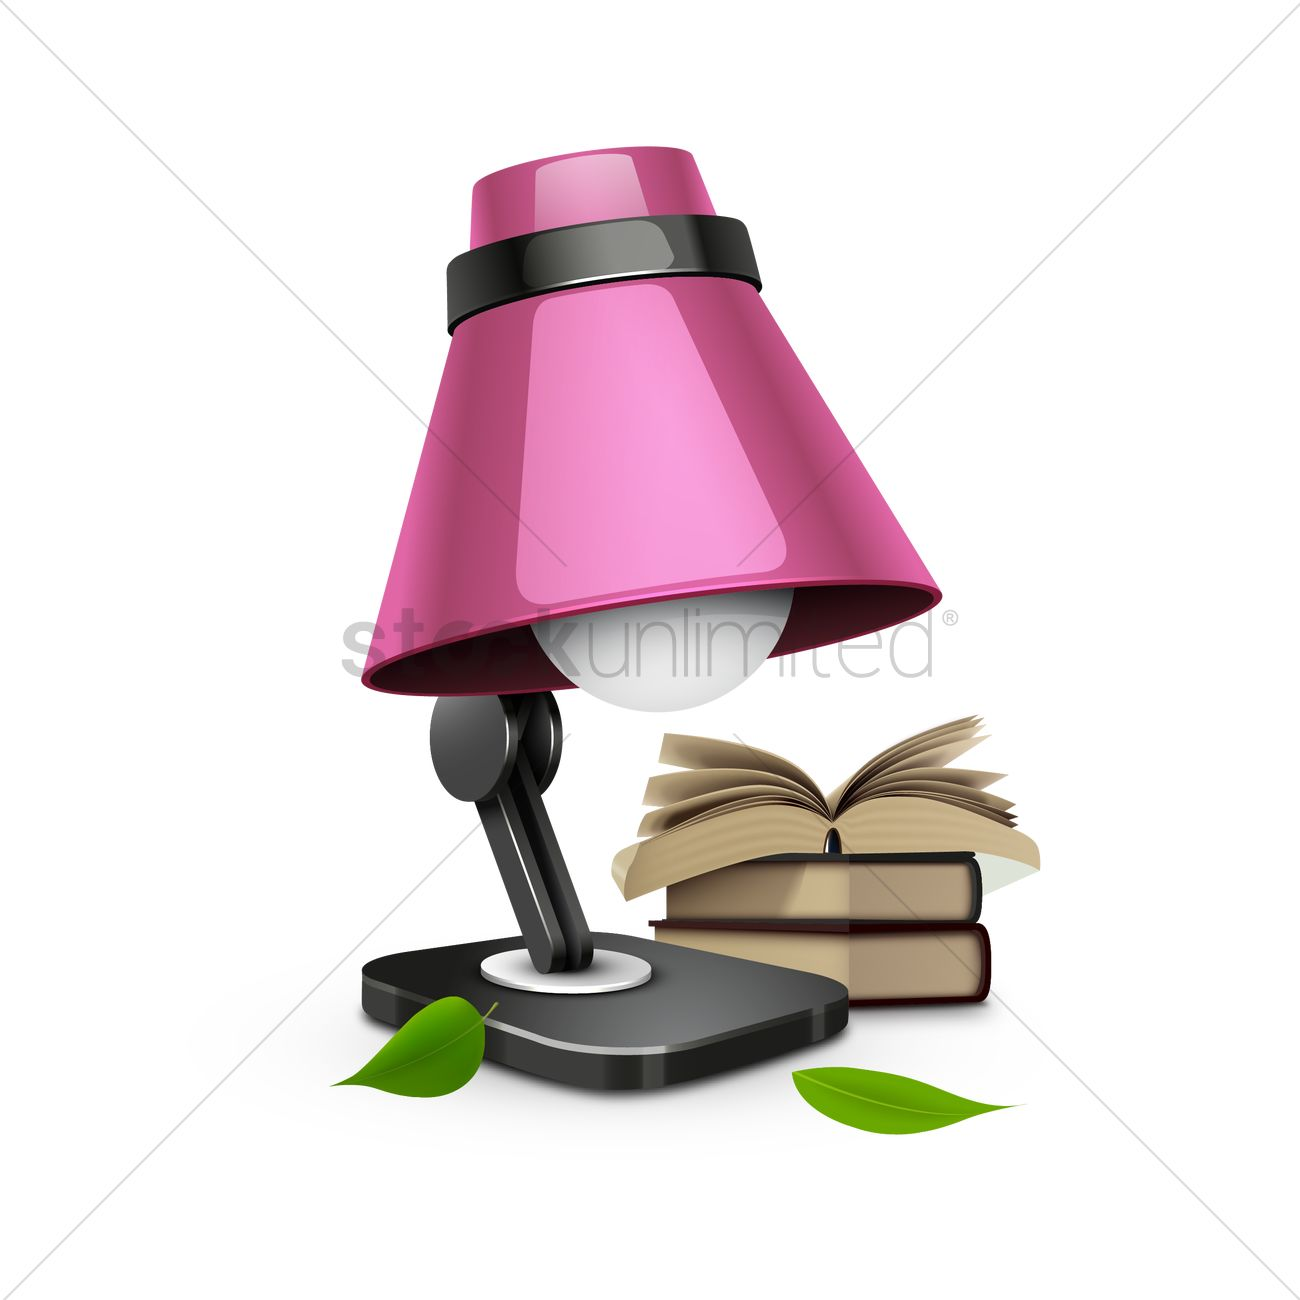 Study lamp Vector Image - 1517784 | StockUnlimited for Study Lamp Clipart  146hul